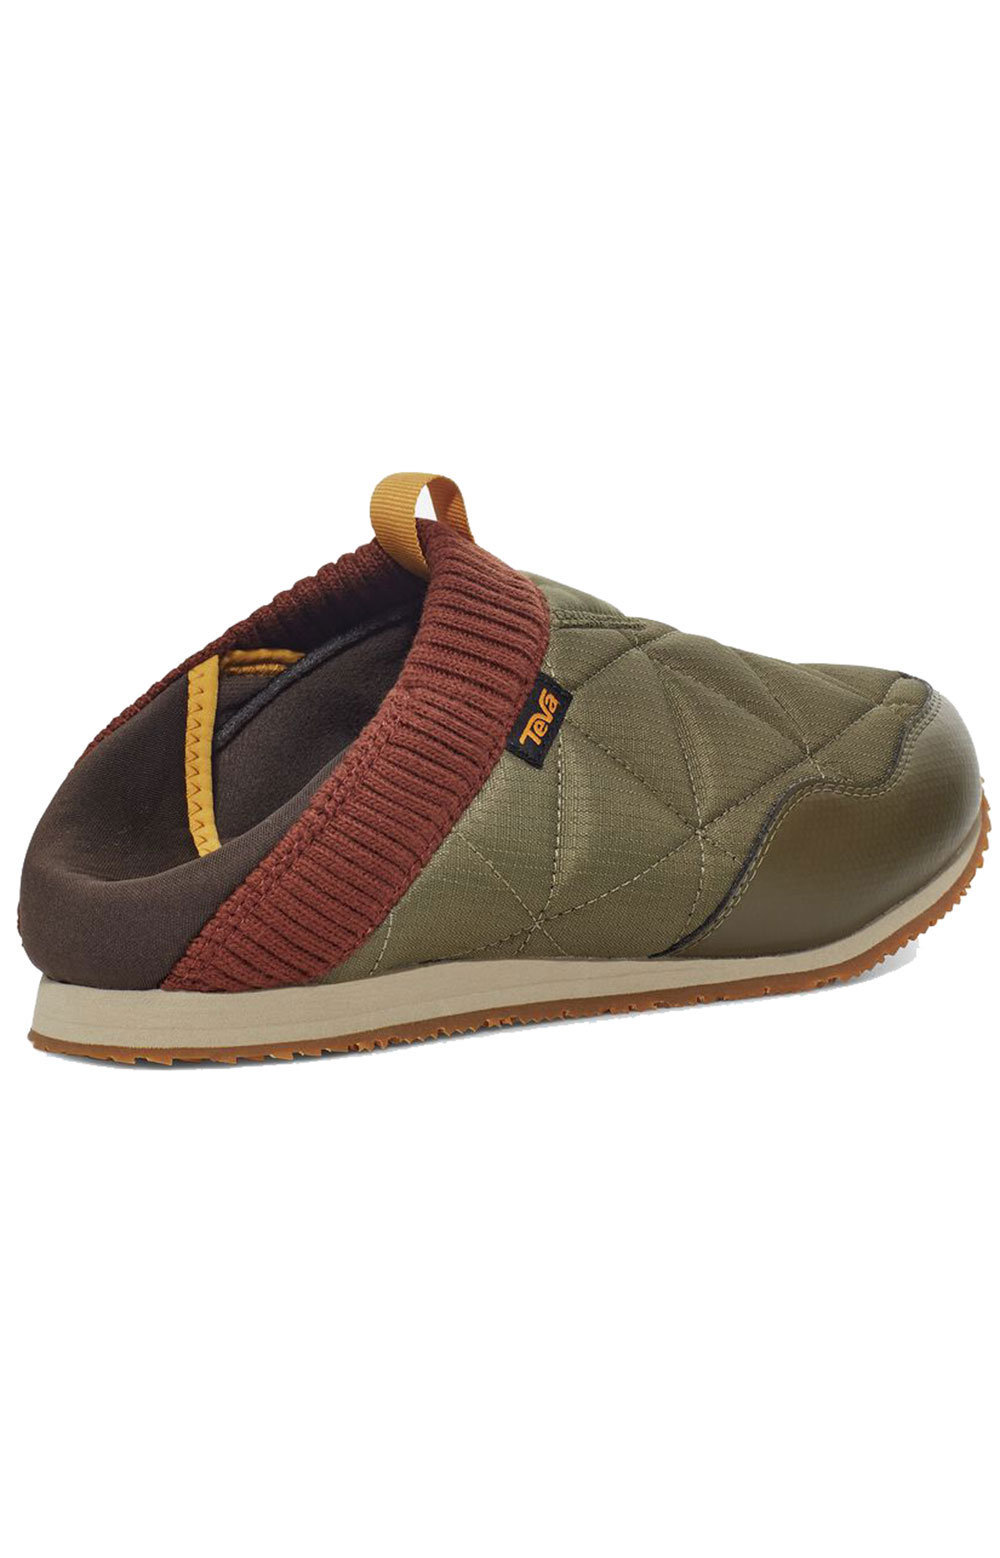 (1125472) ReEMBER Moccasins - Olive/Brown Multi  6